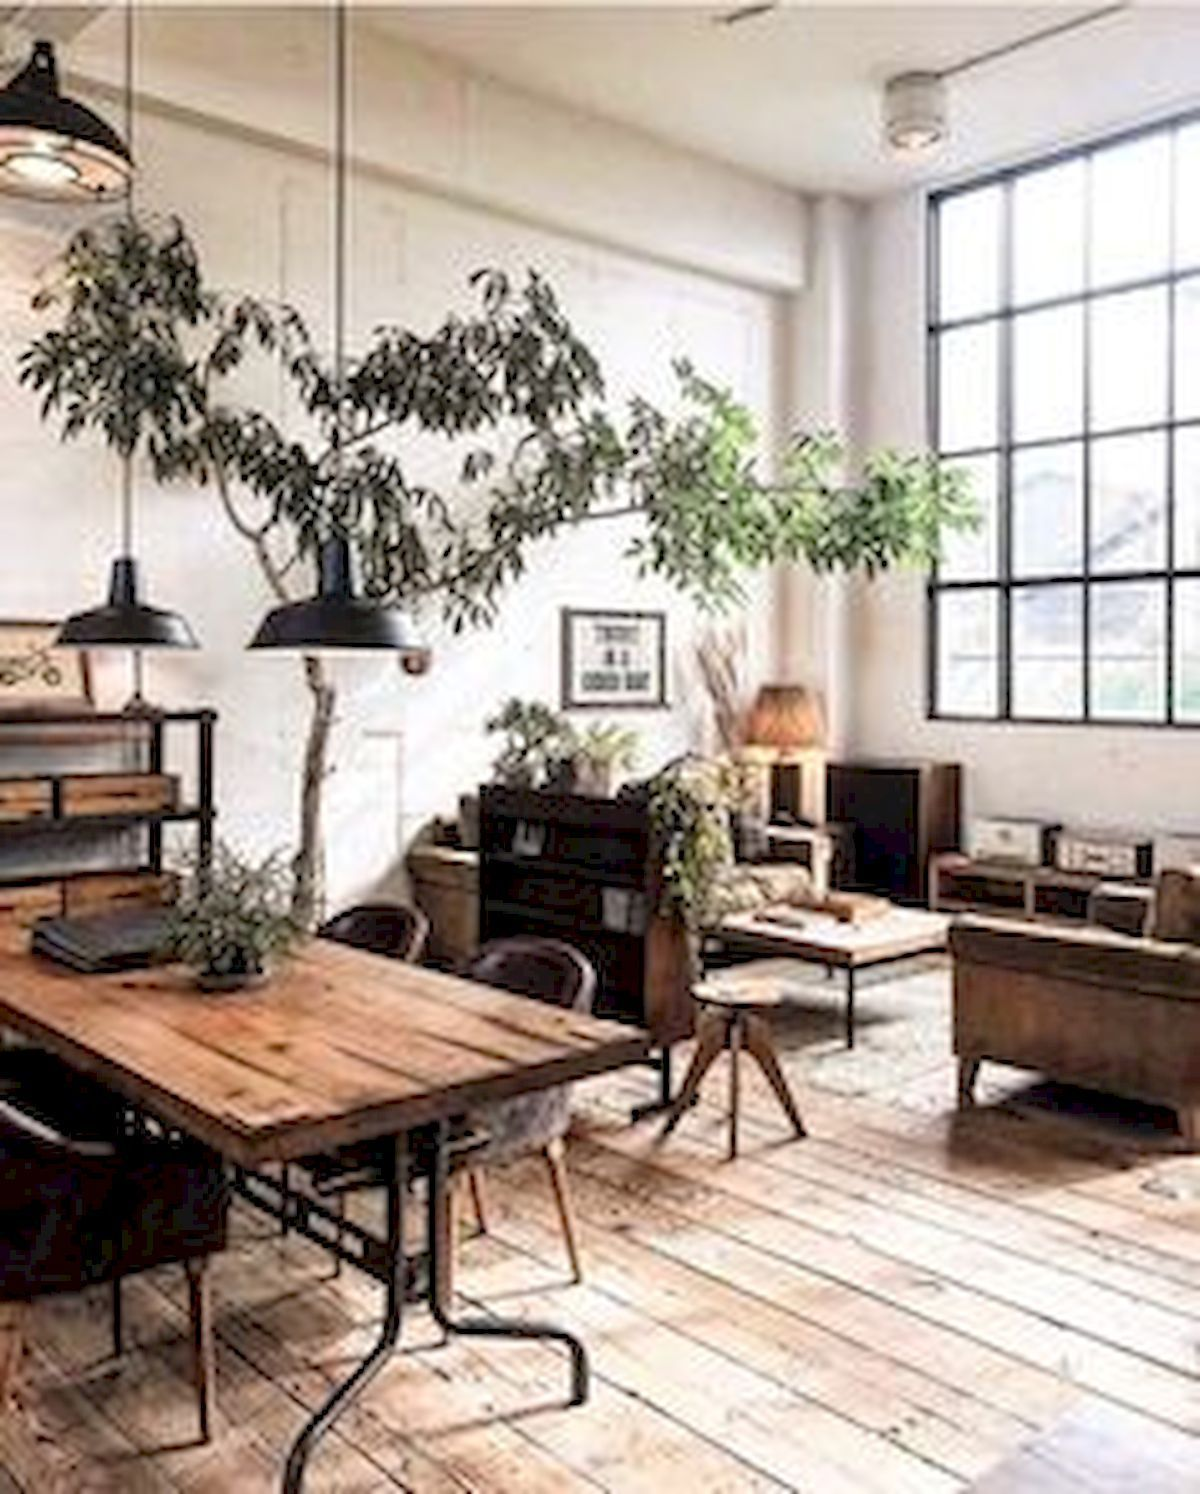 Brilliant furniture design ideas with wood pallets 28